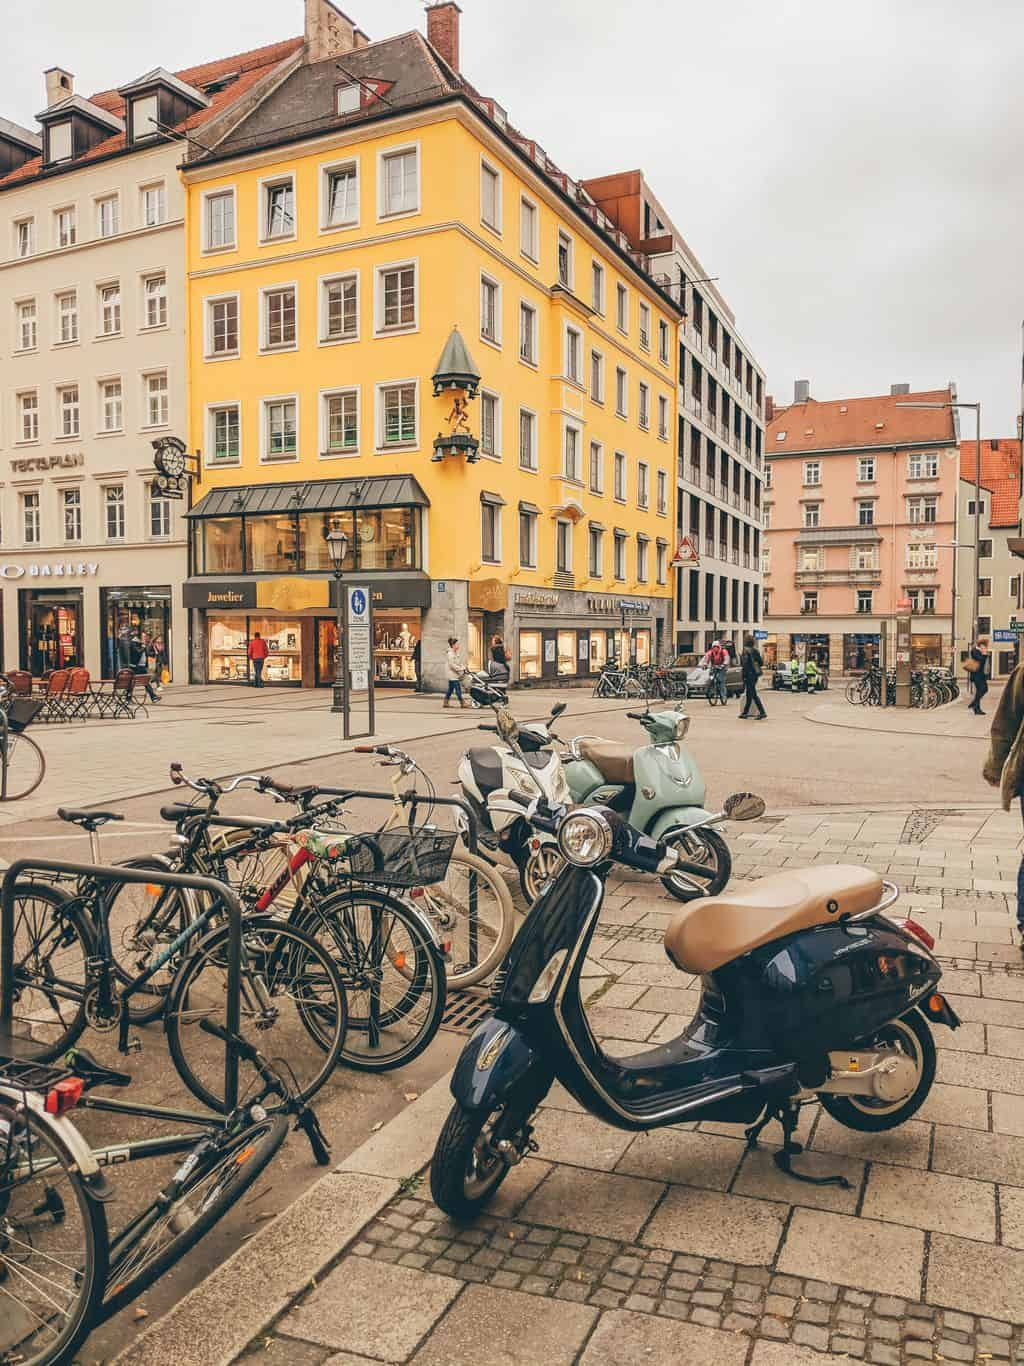 things to do in Munich, places to visit in Munich, sights in Munich, Munich sightseeing, Munich tourist attractions